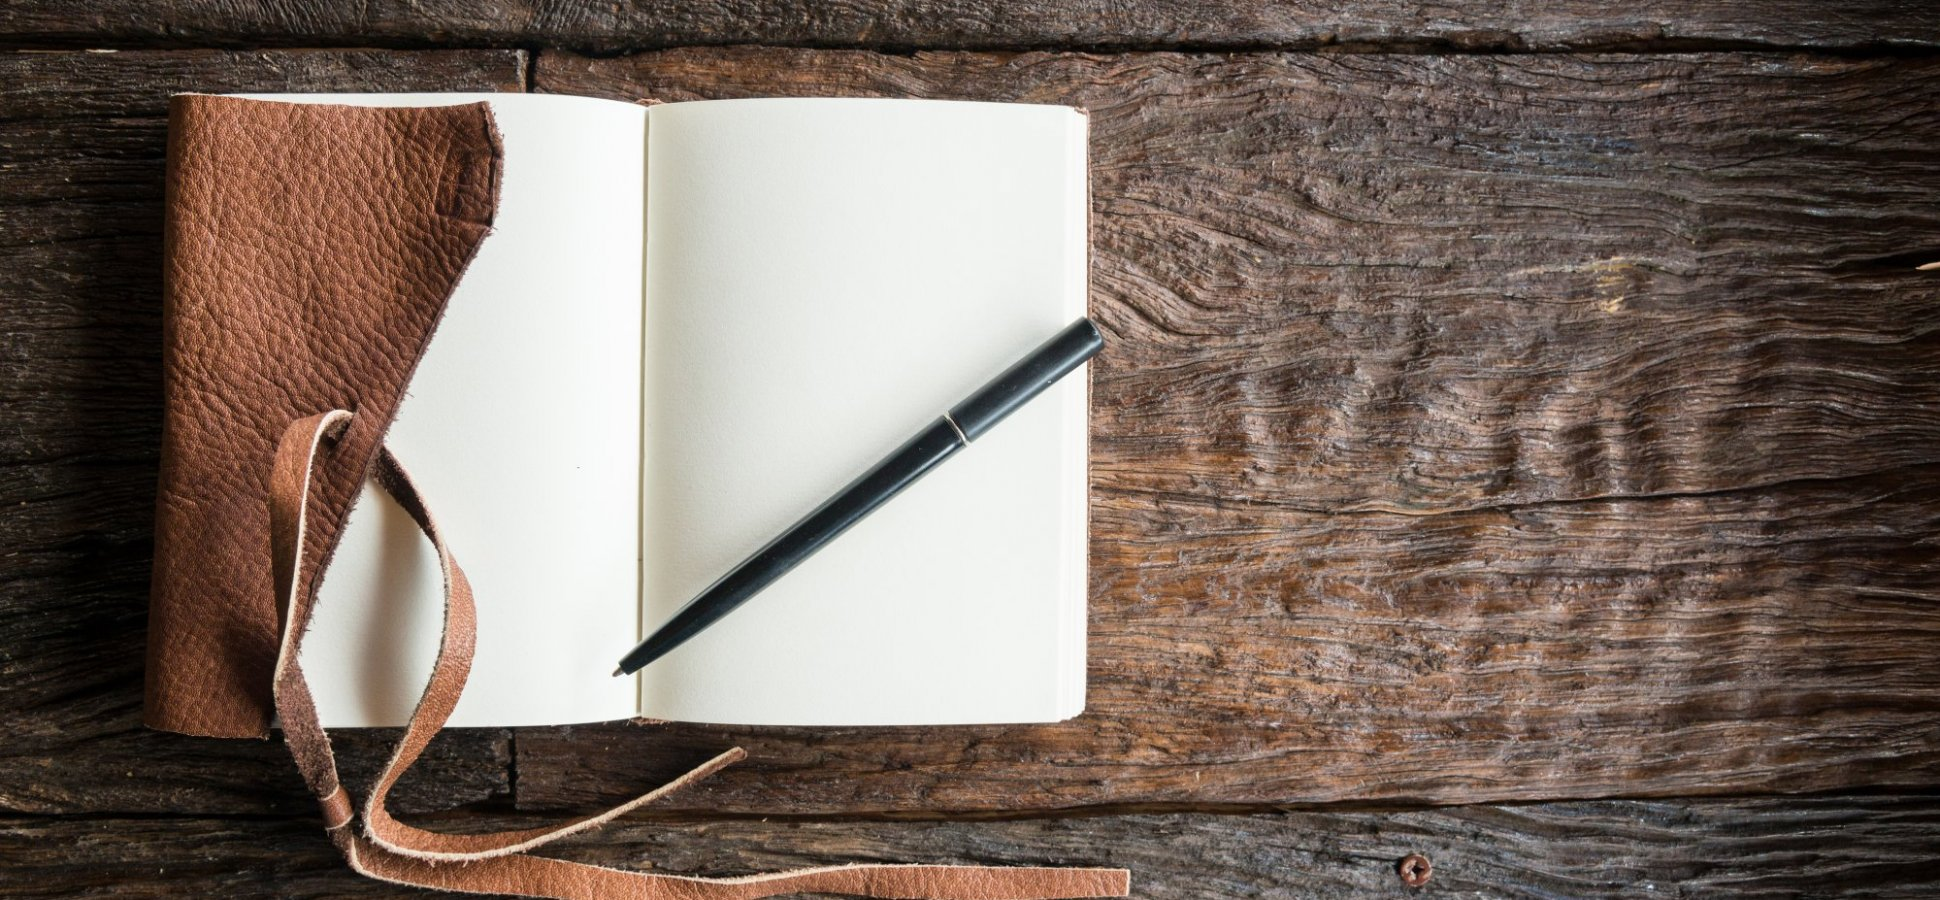 3 Good Reasons to Keep a Daily Business Diary to Understand Your Business Better